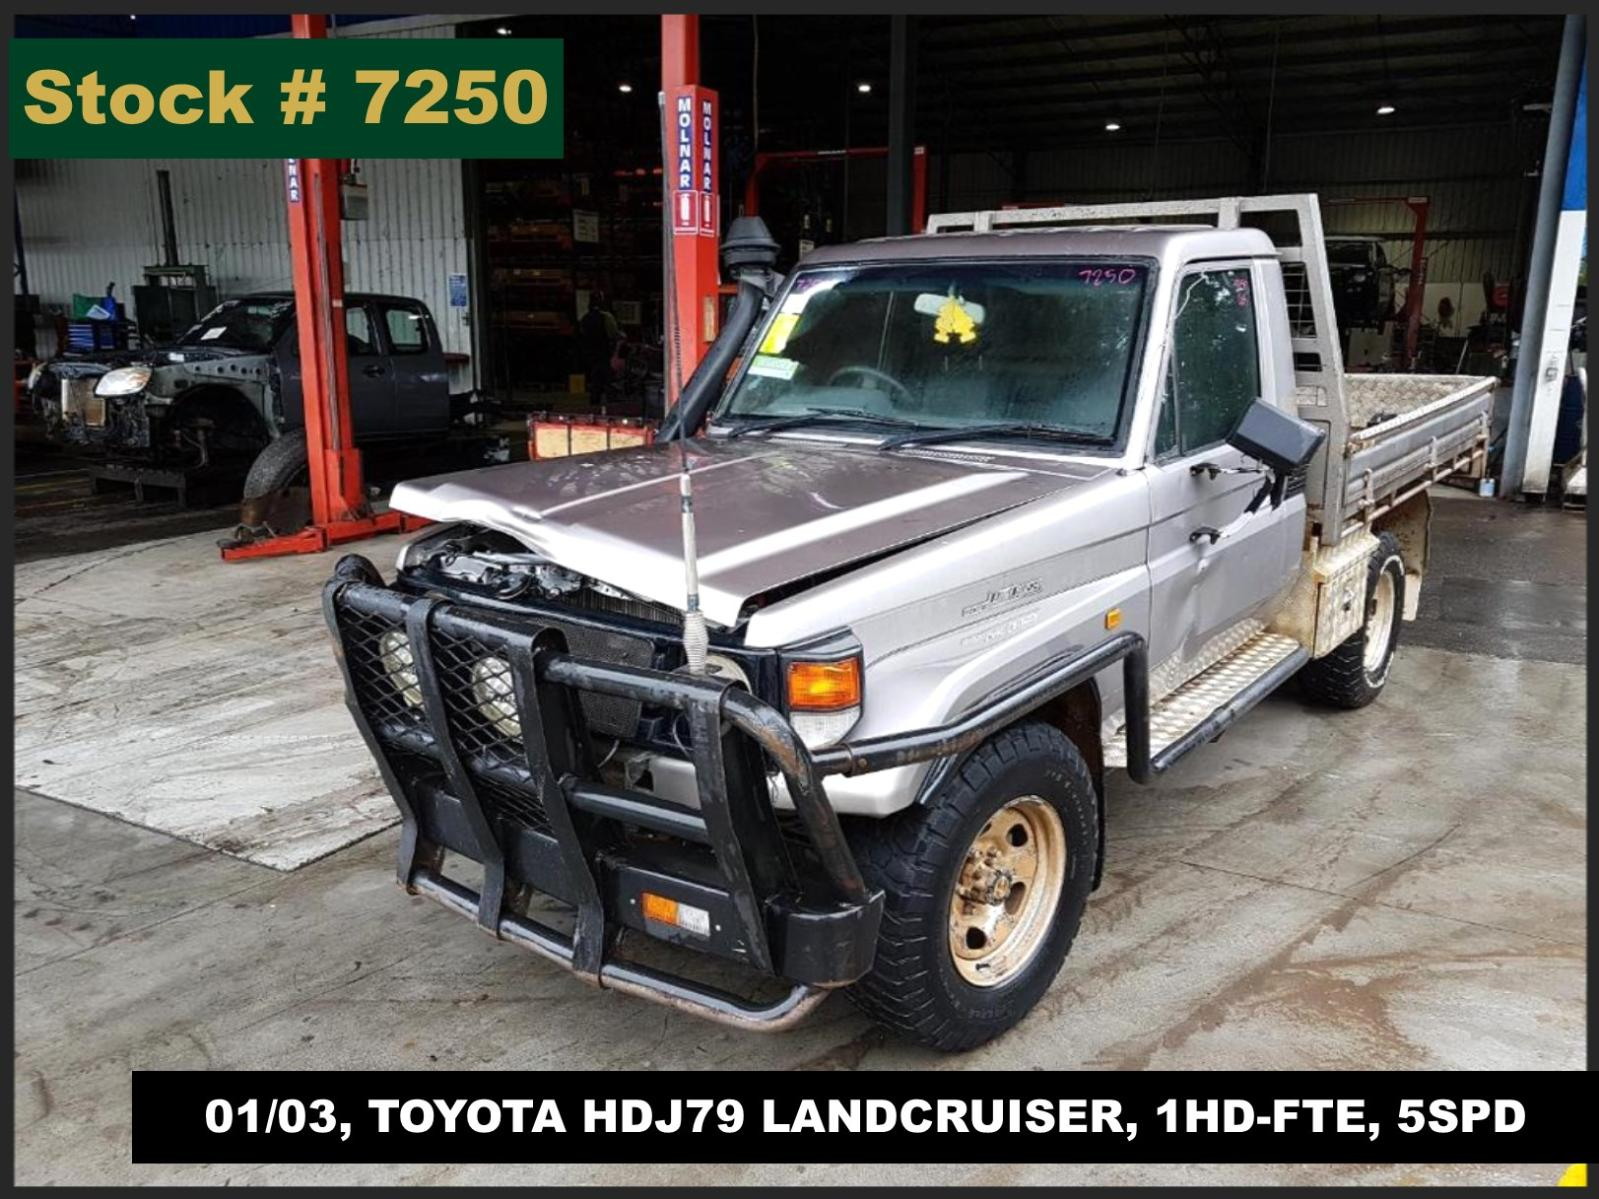 Image for a Toyota Landcruiser 2003